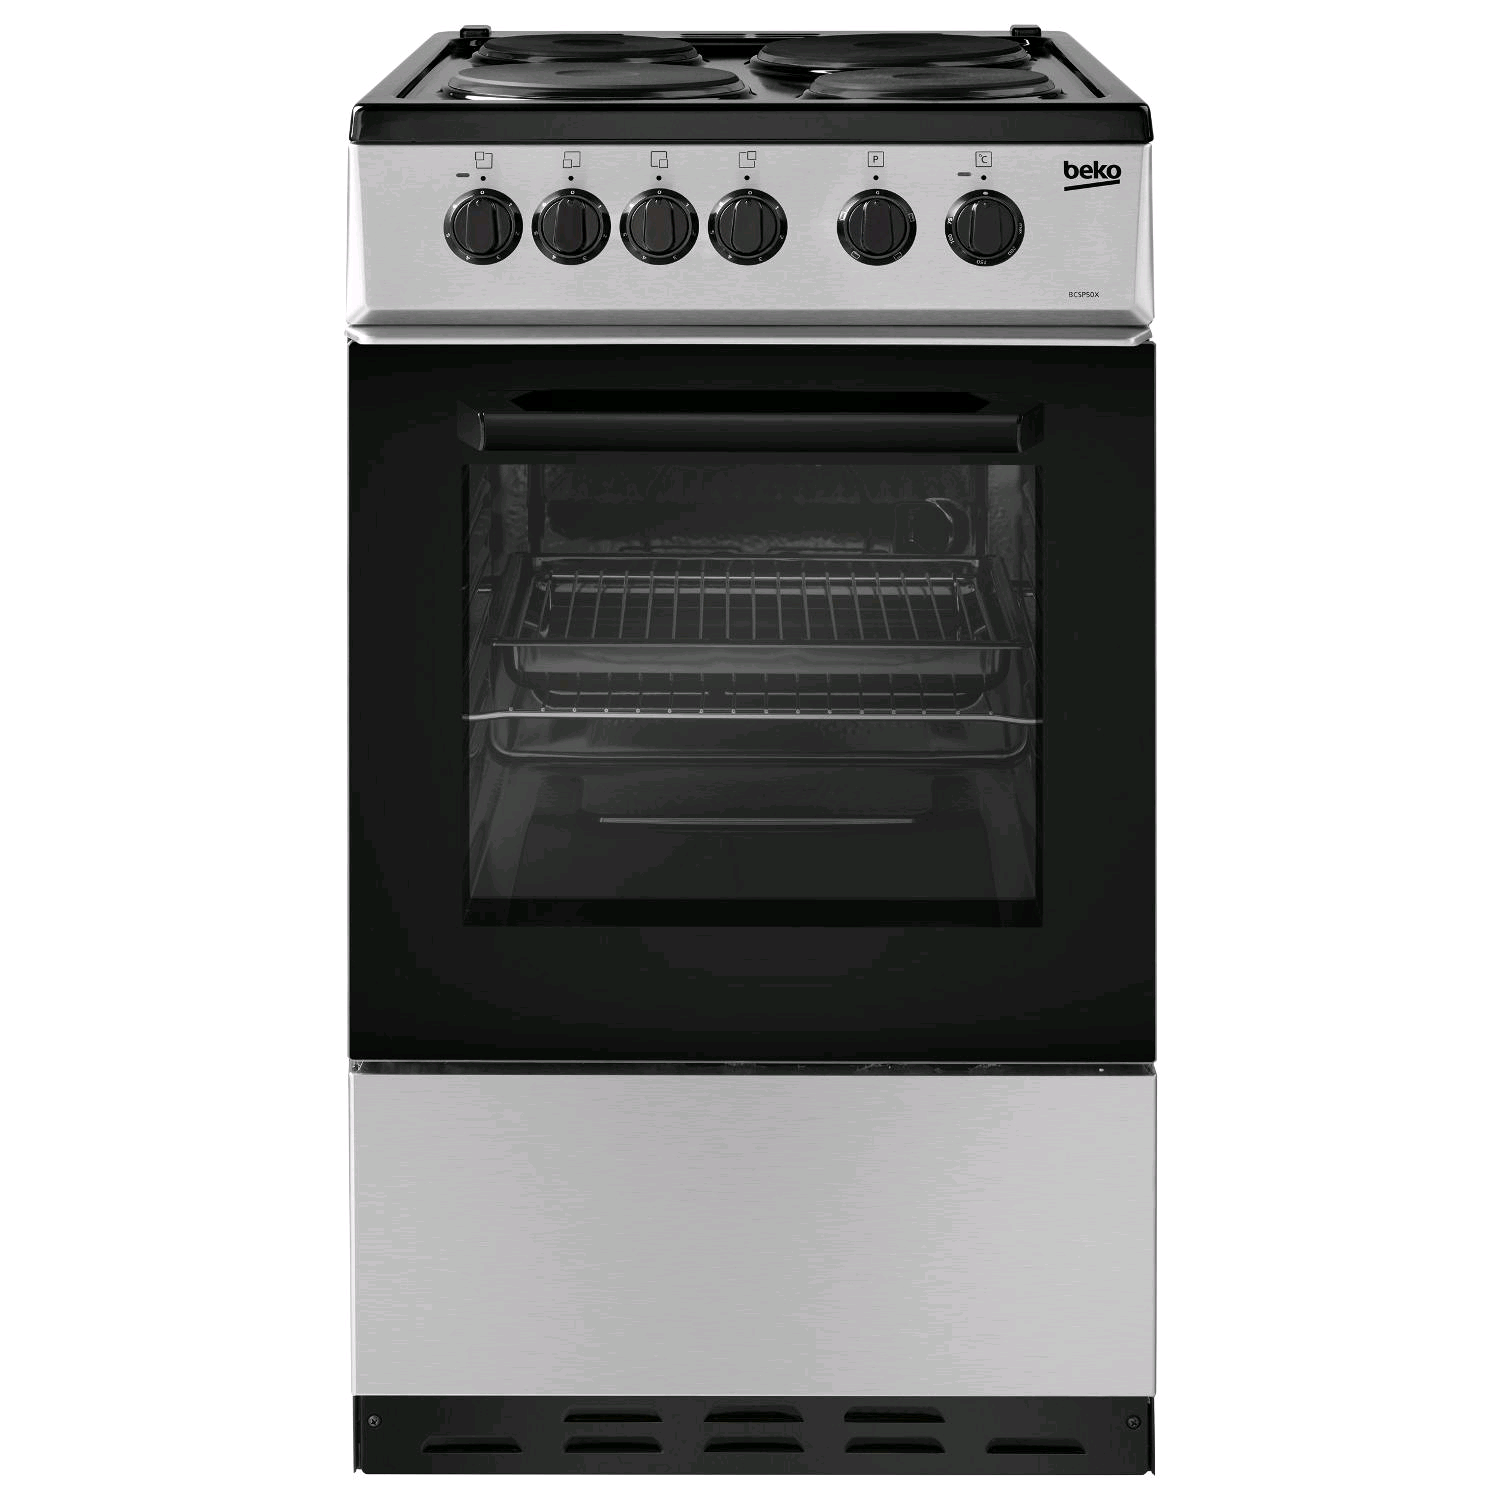 Beko Stainless Steel 60l conventional single oven cooker